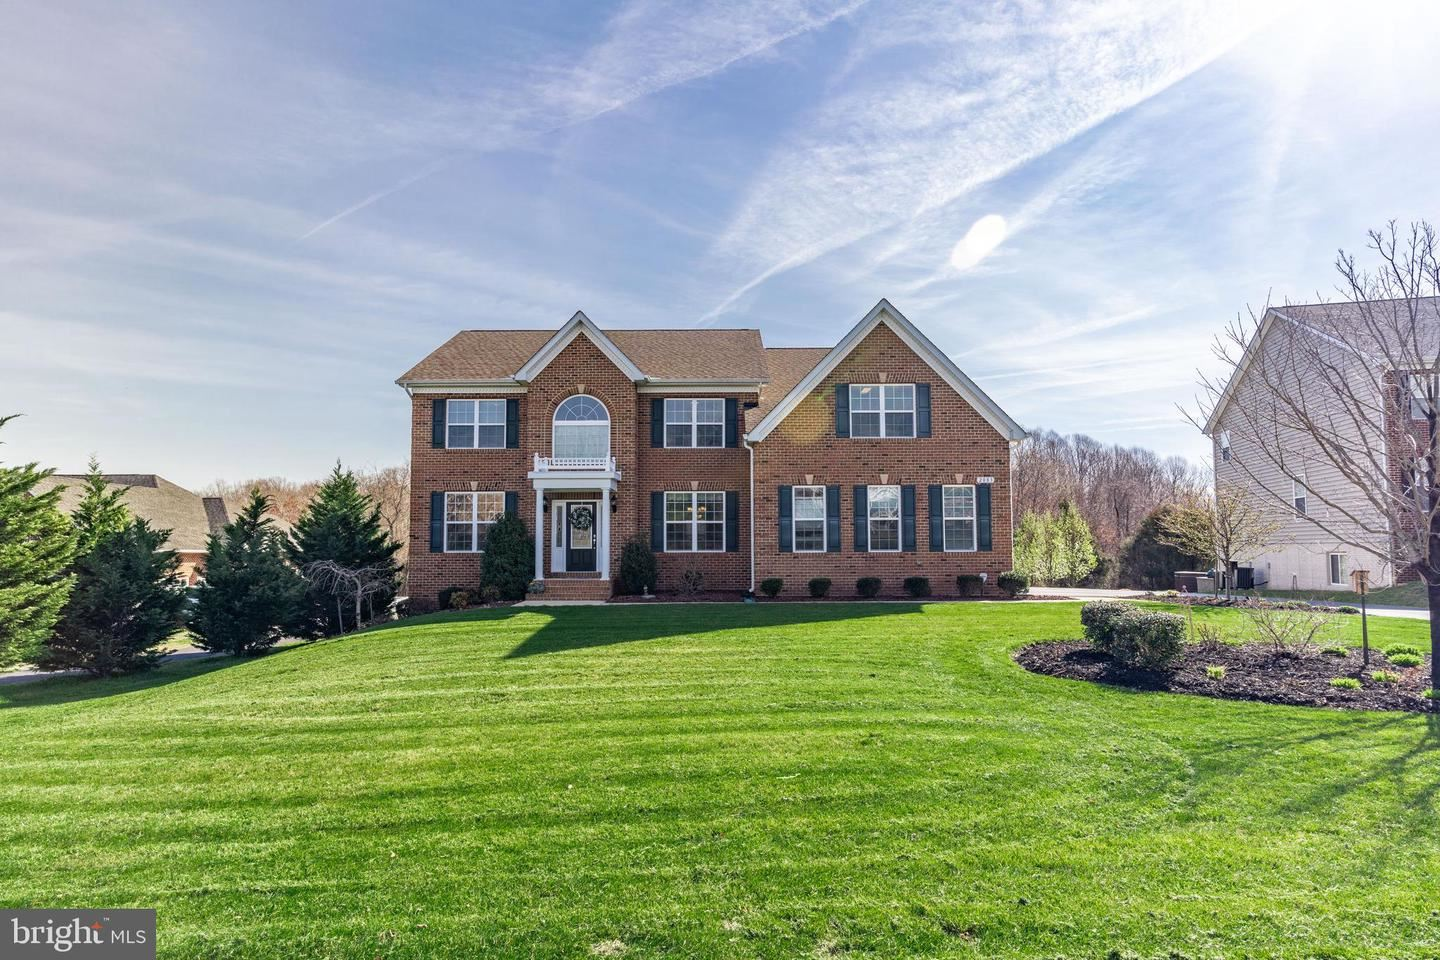 2083 TIMBERNECK DR, Owings, MD 20736 - MLS#: MDCA175110